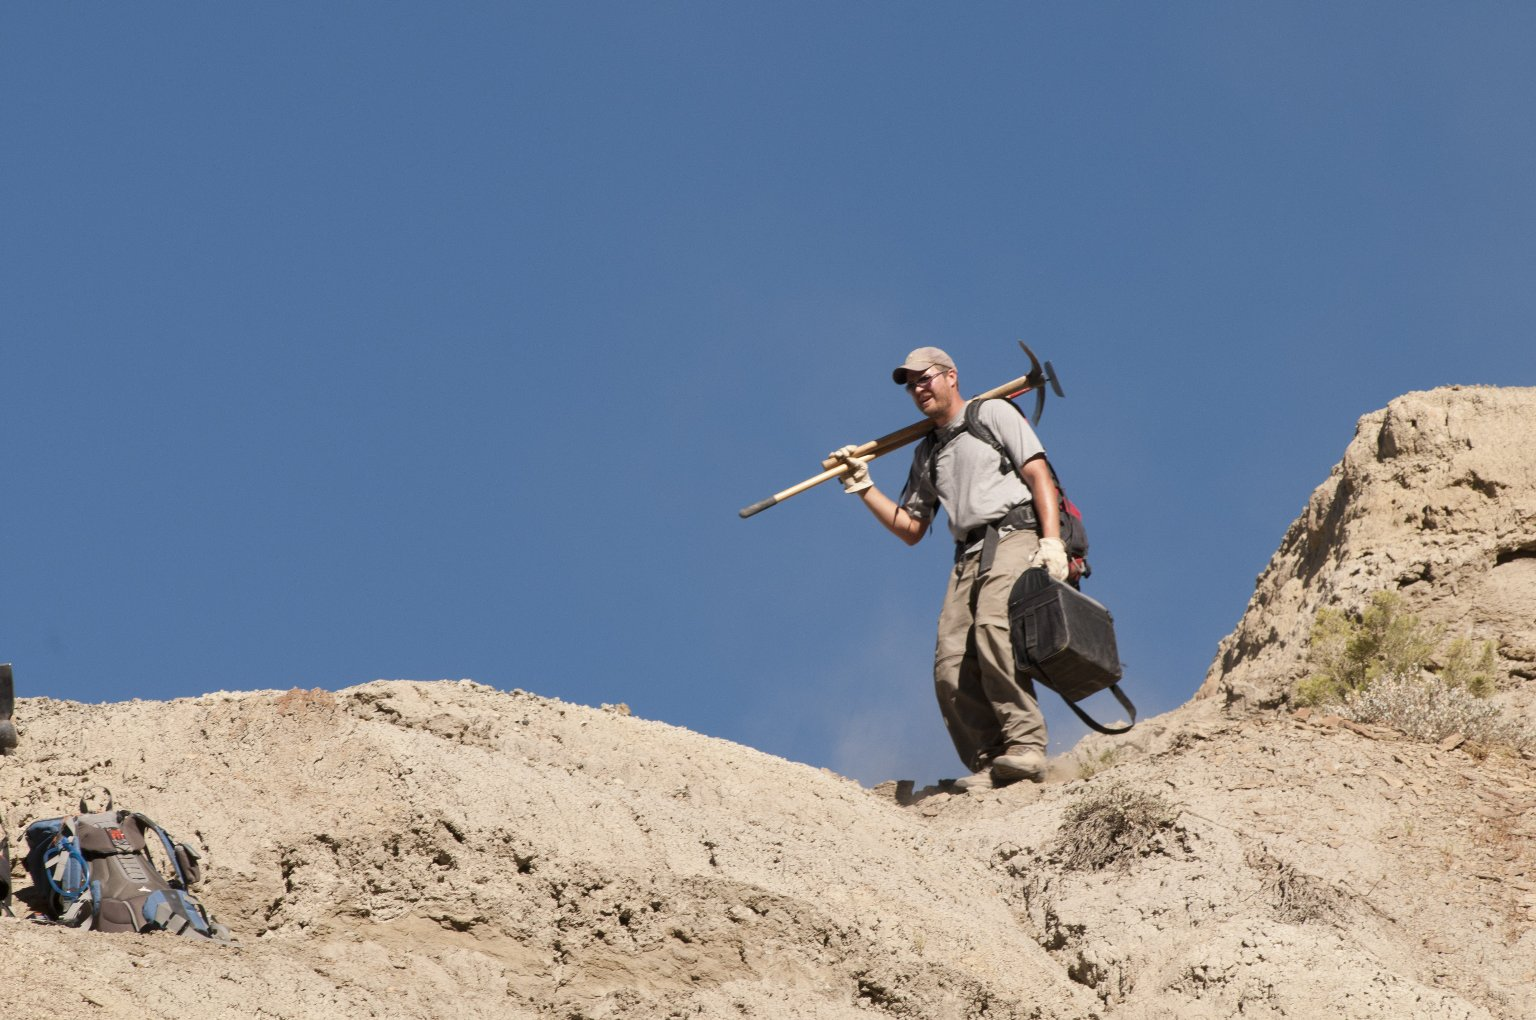 Dr. Ian Miller hauls tools to an excavation site on the Kaiparowits Plateau.